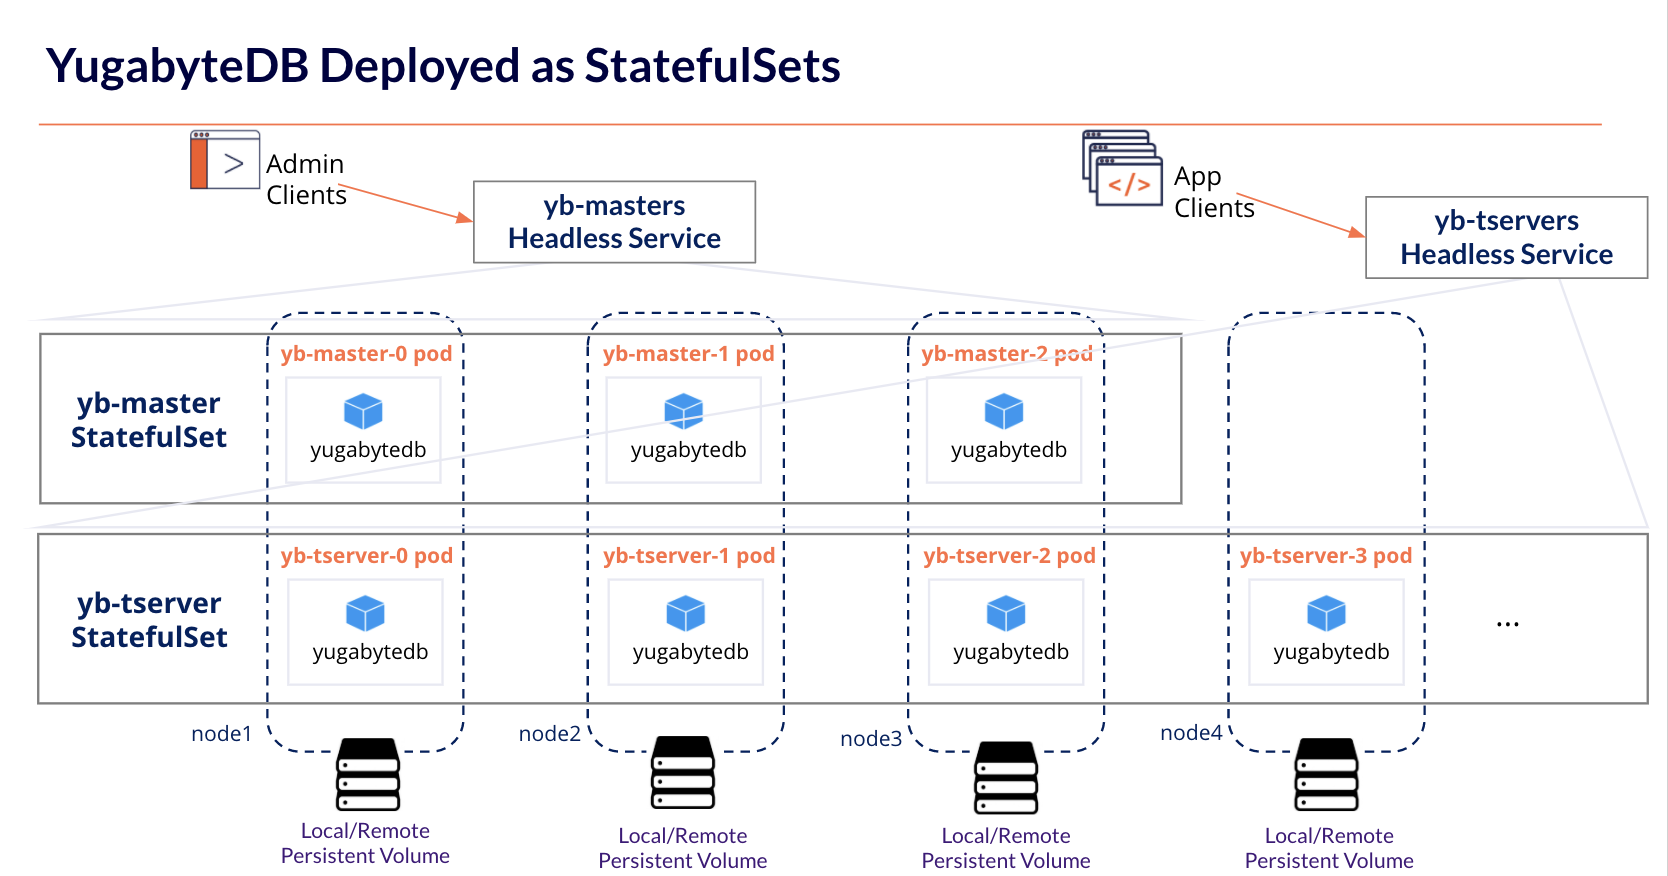 YugabyteDB Deployed as StatefulSets